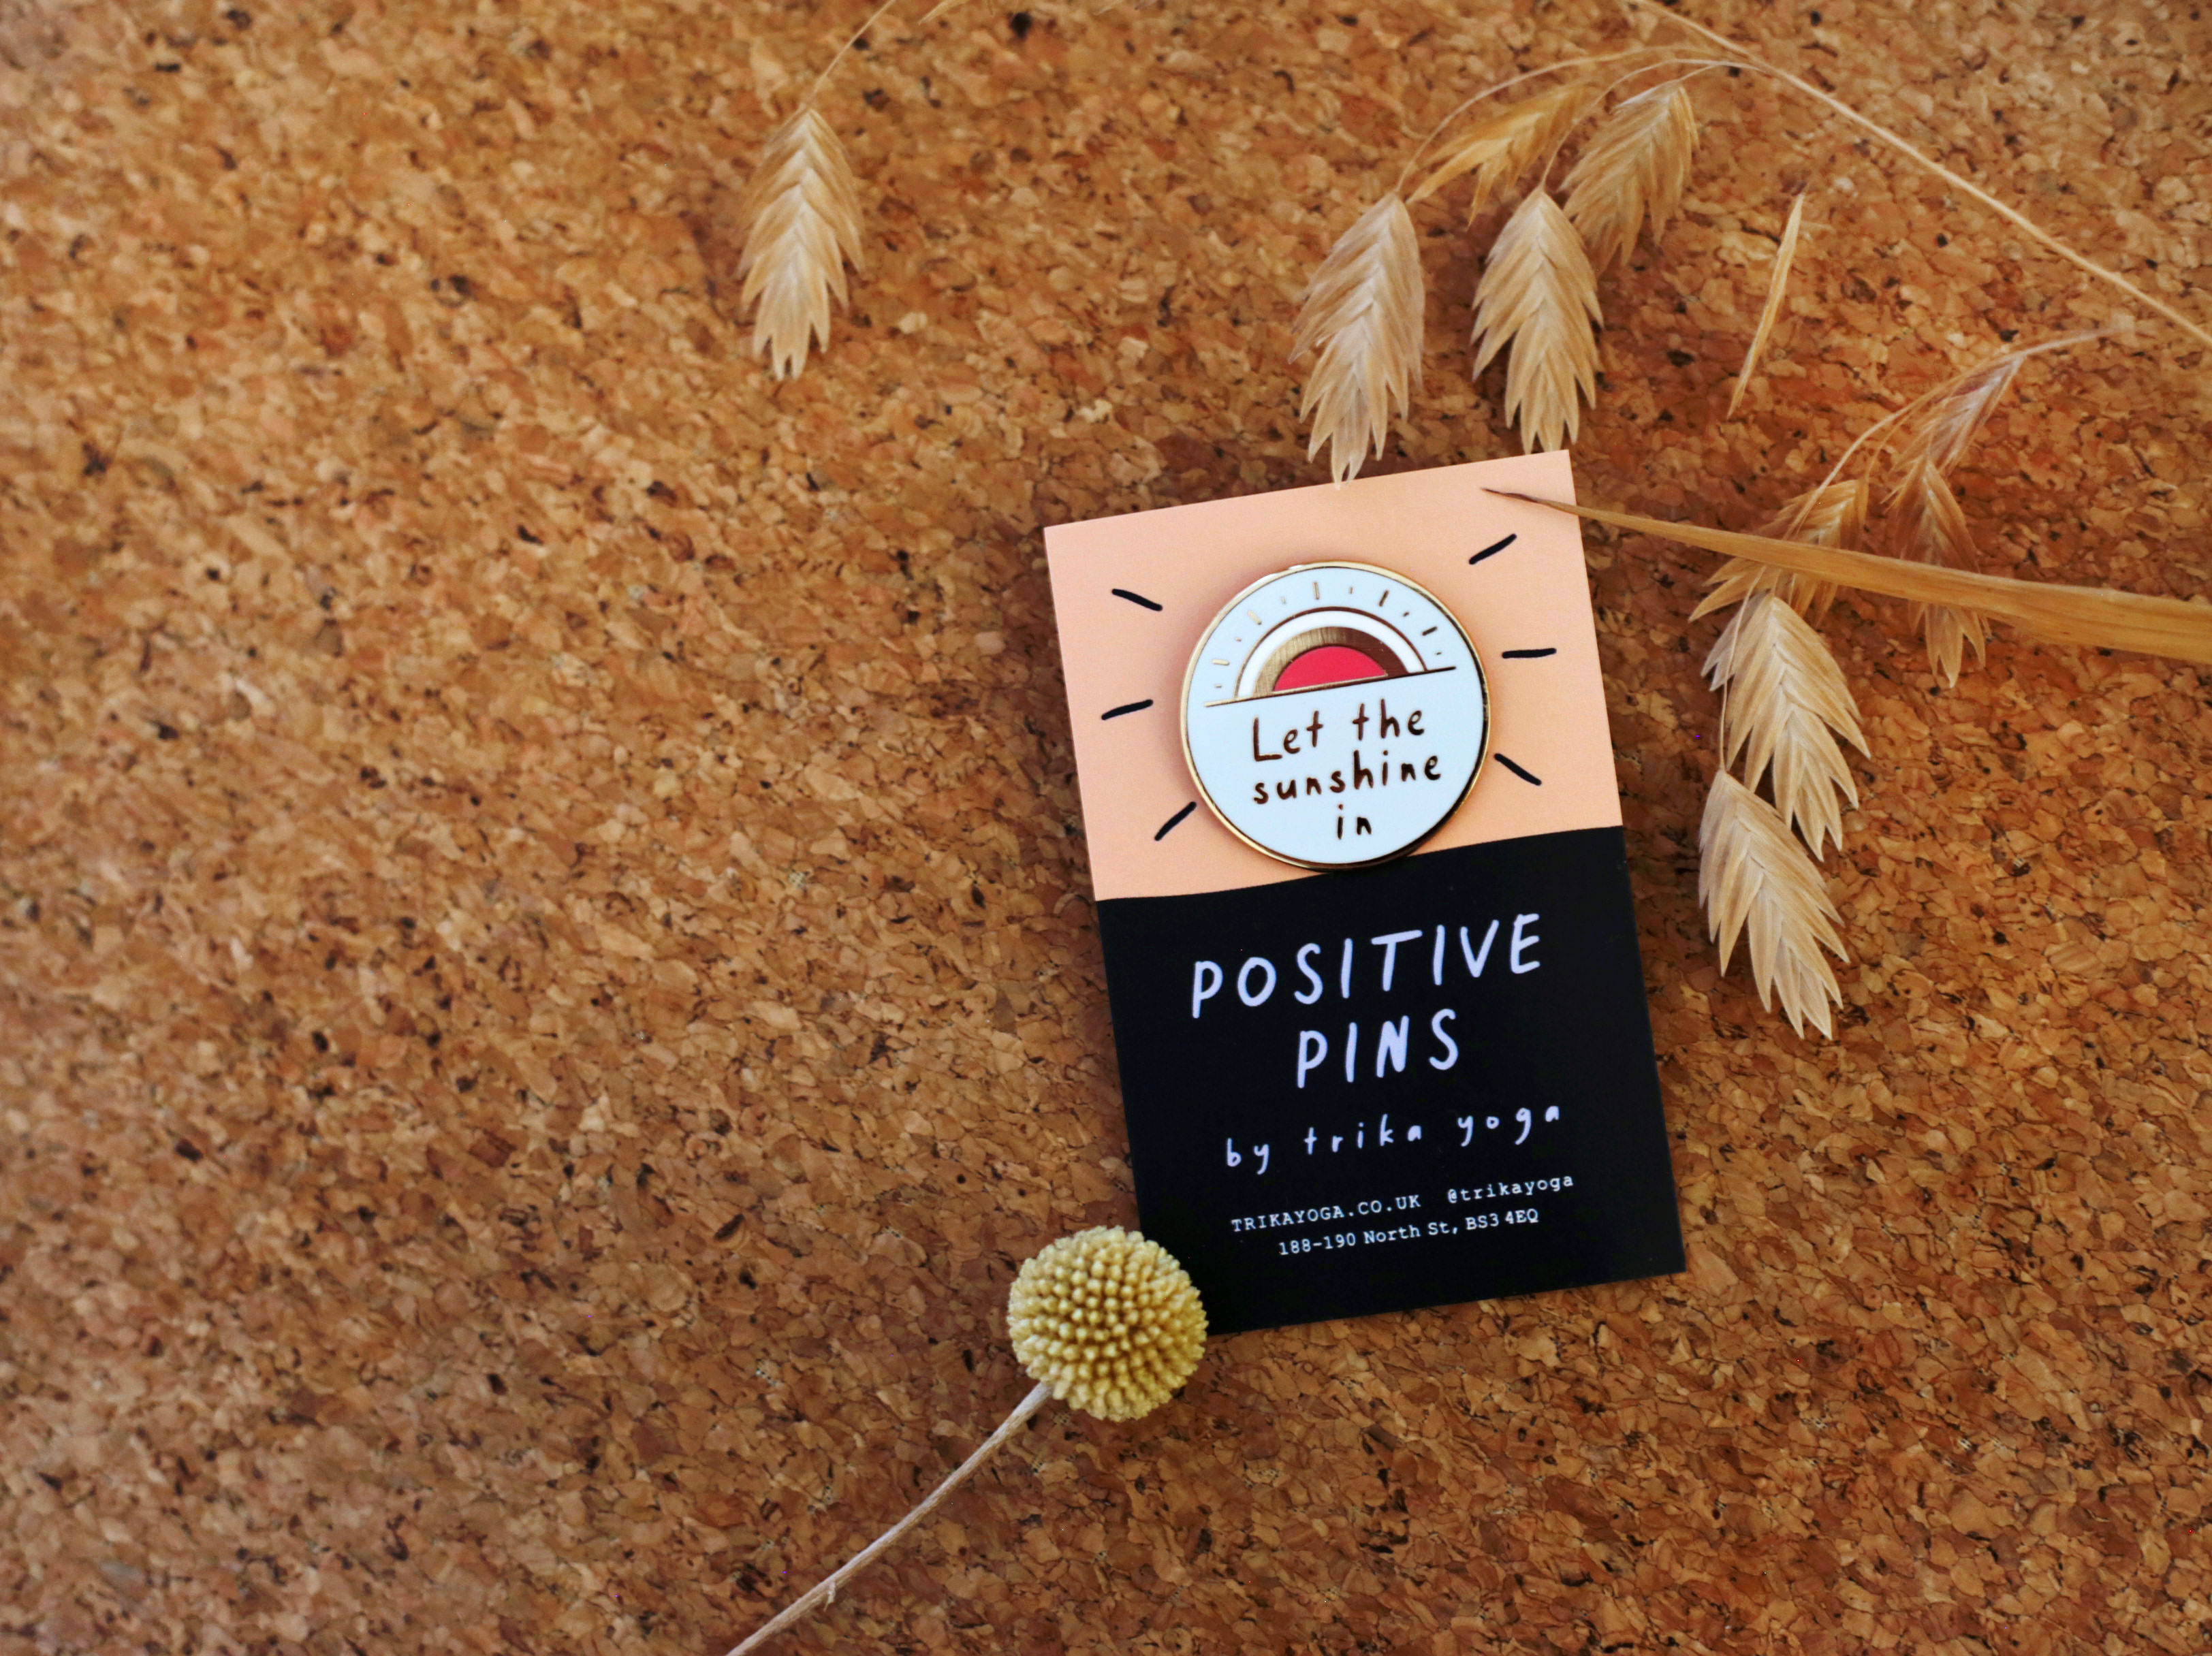 Positive Pins: Let the Sunshine In